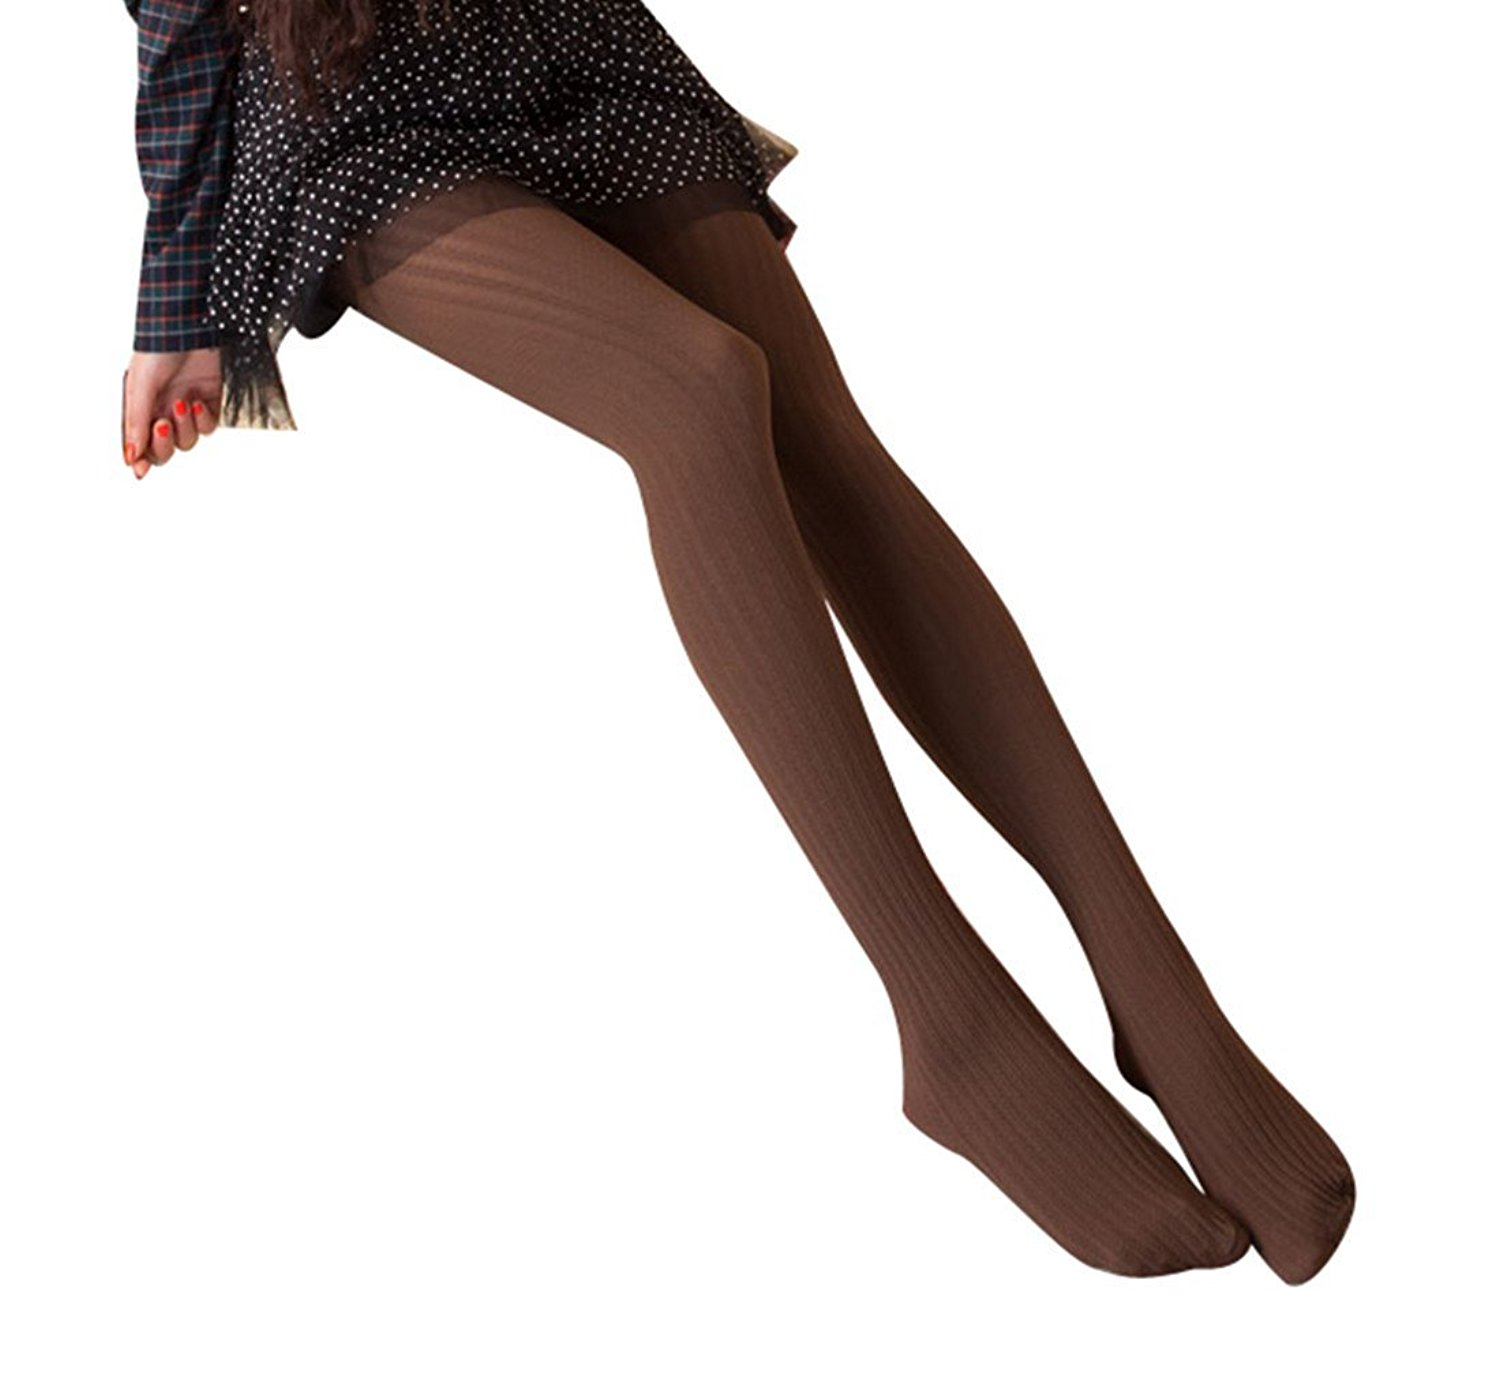 430f092ae69 Get Quotations · AM CLOTHES Womens Sexy Slim Stripe Stretch Tight Stockings  Pantyhose